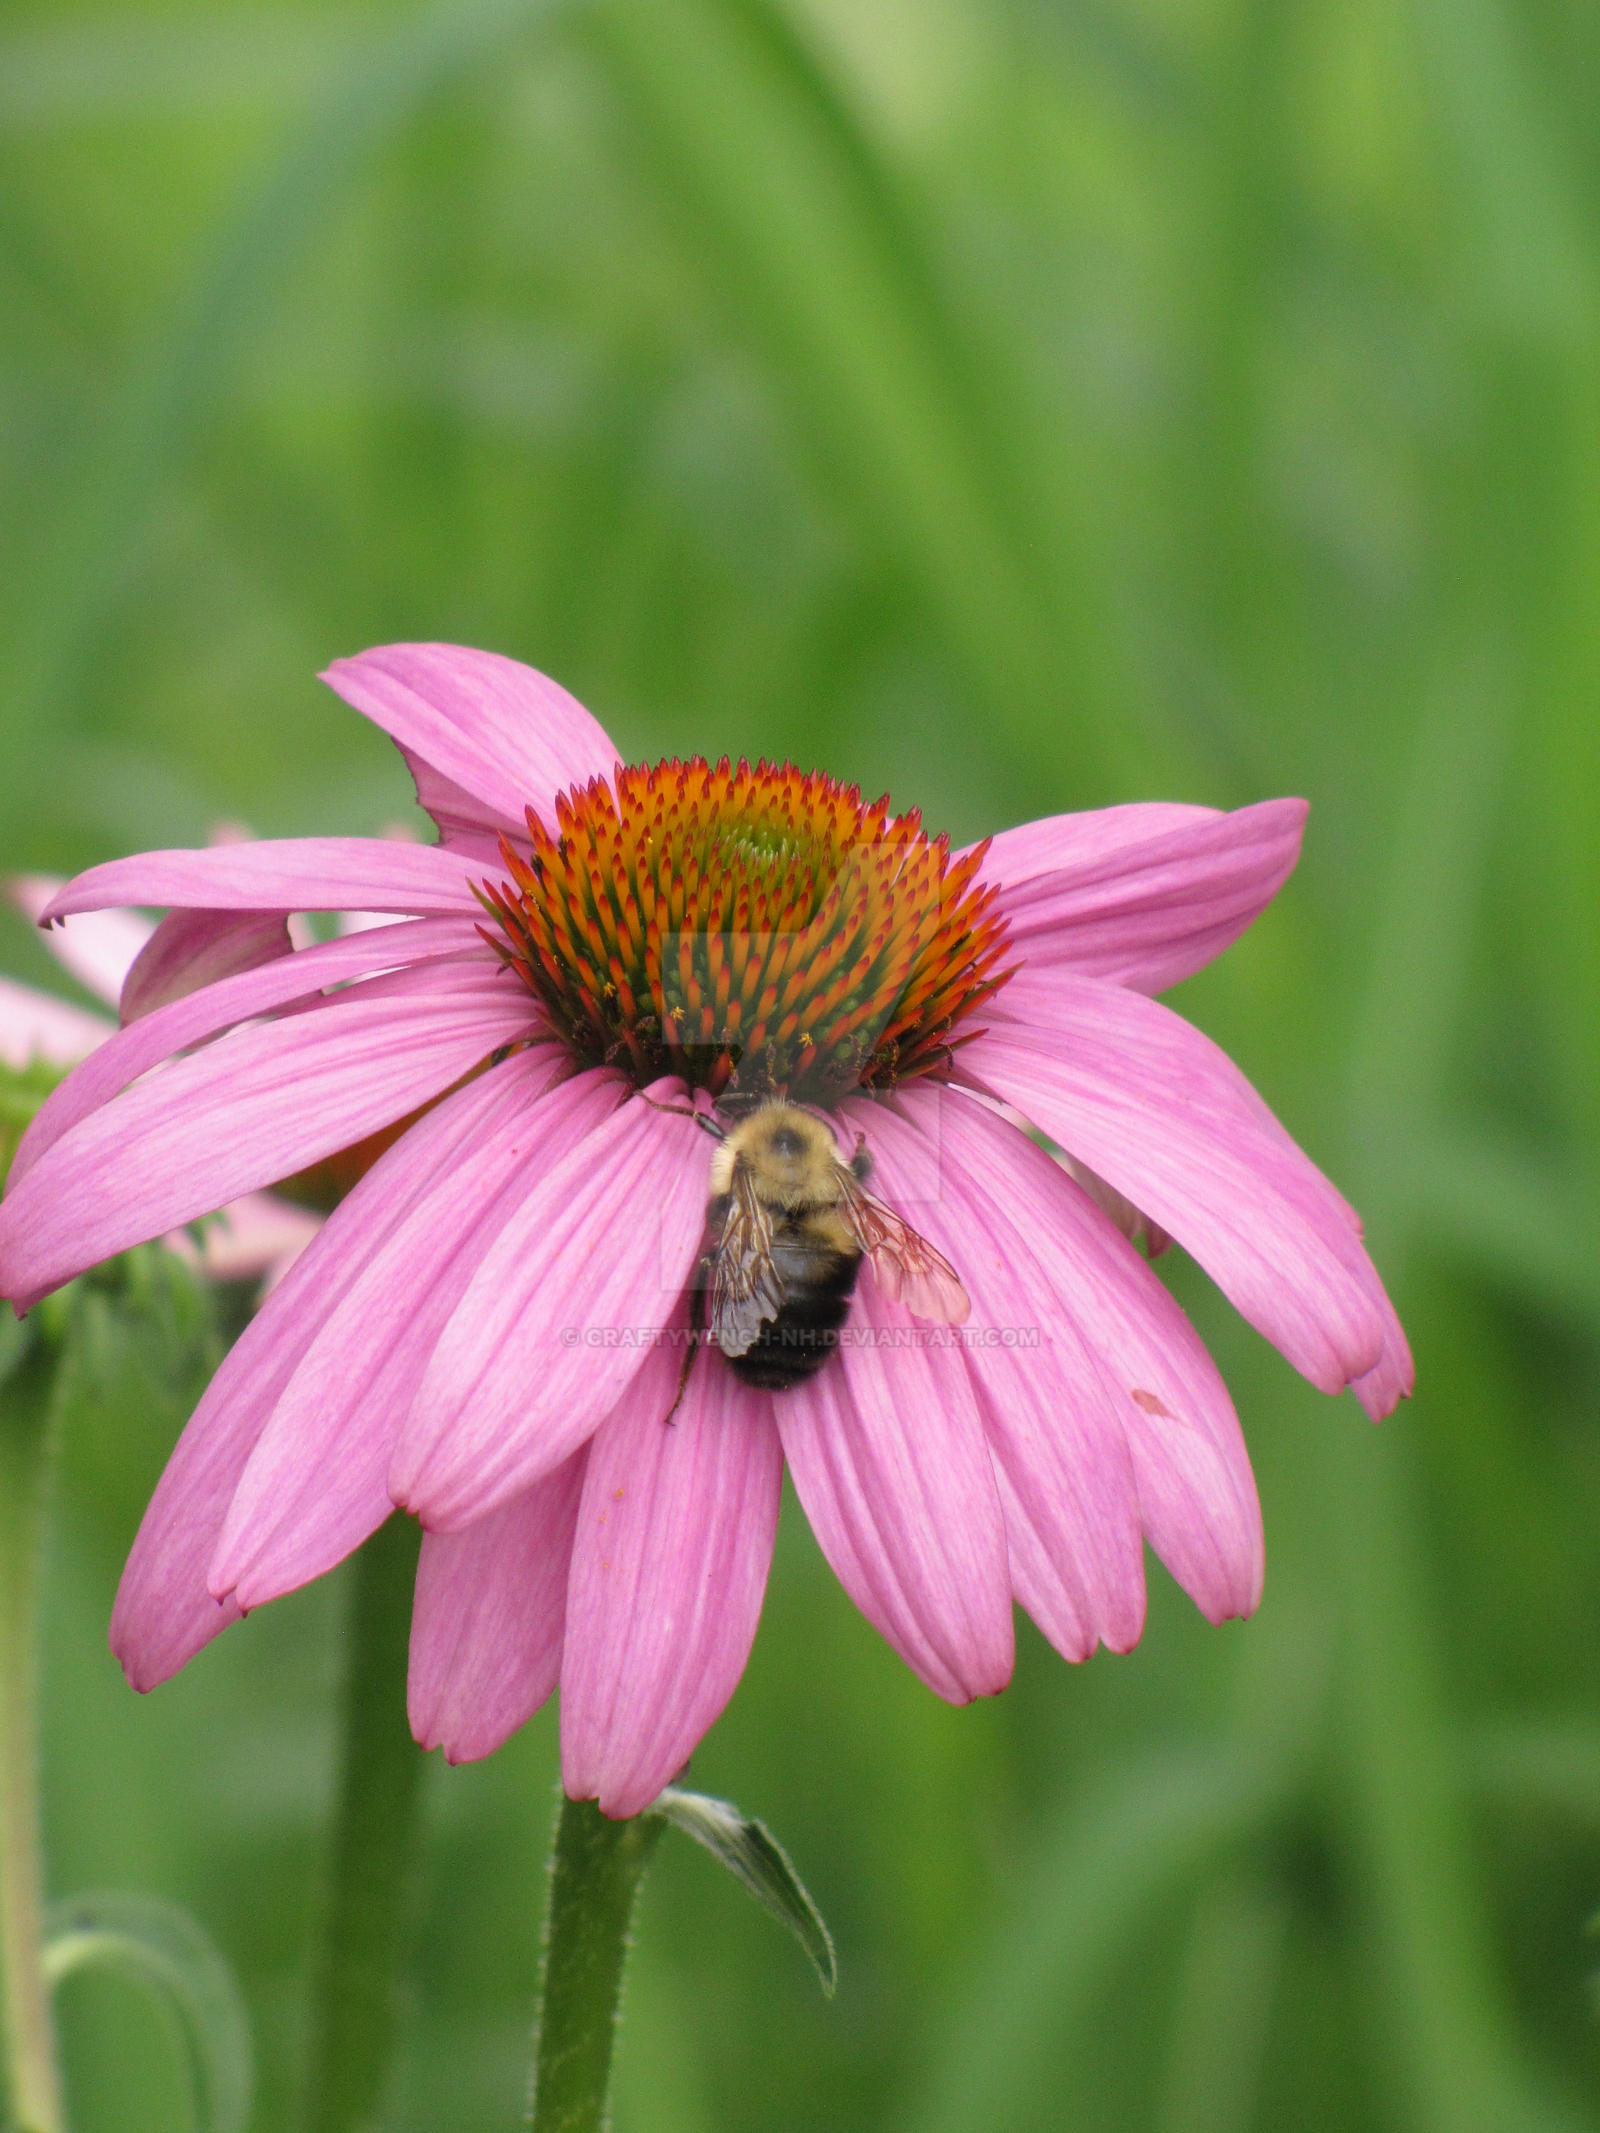 Bee on Pink Flower by craftywench-nh